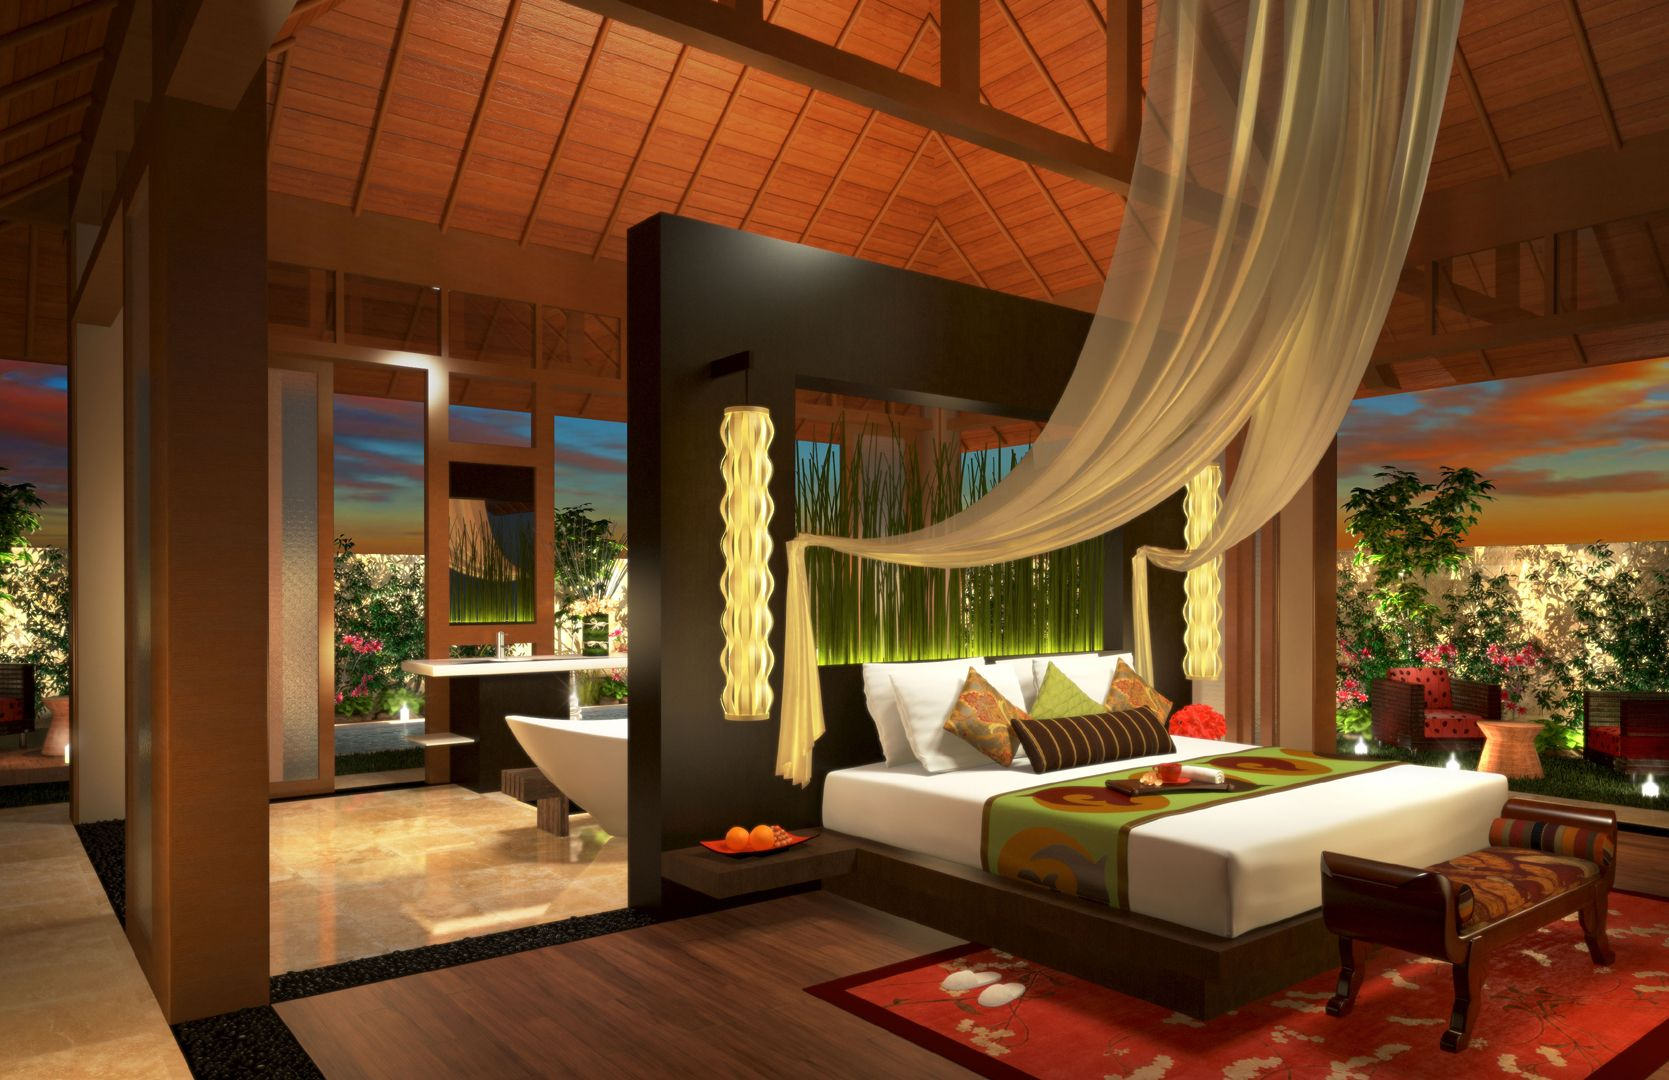 Bali Home Design Ideas: Bali Interior Design - Google Search